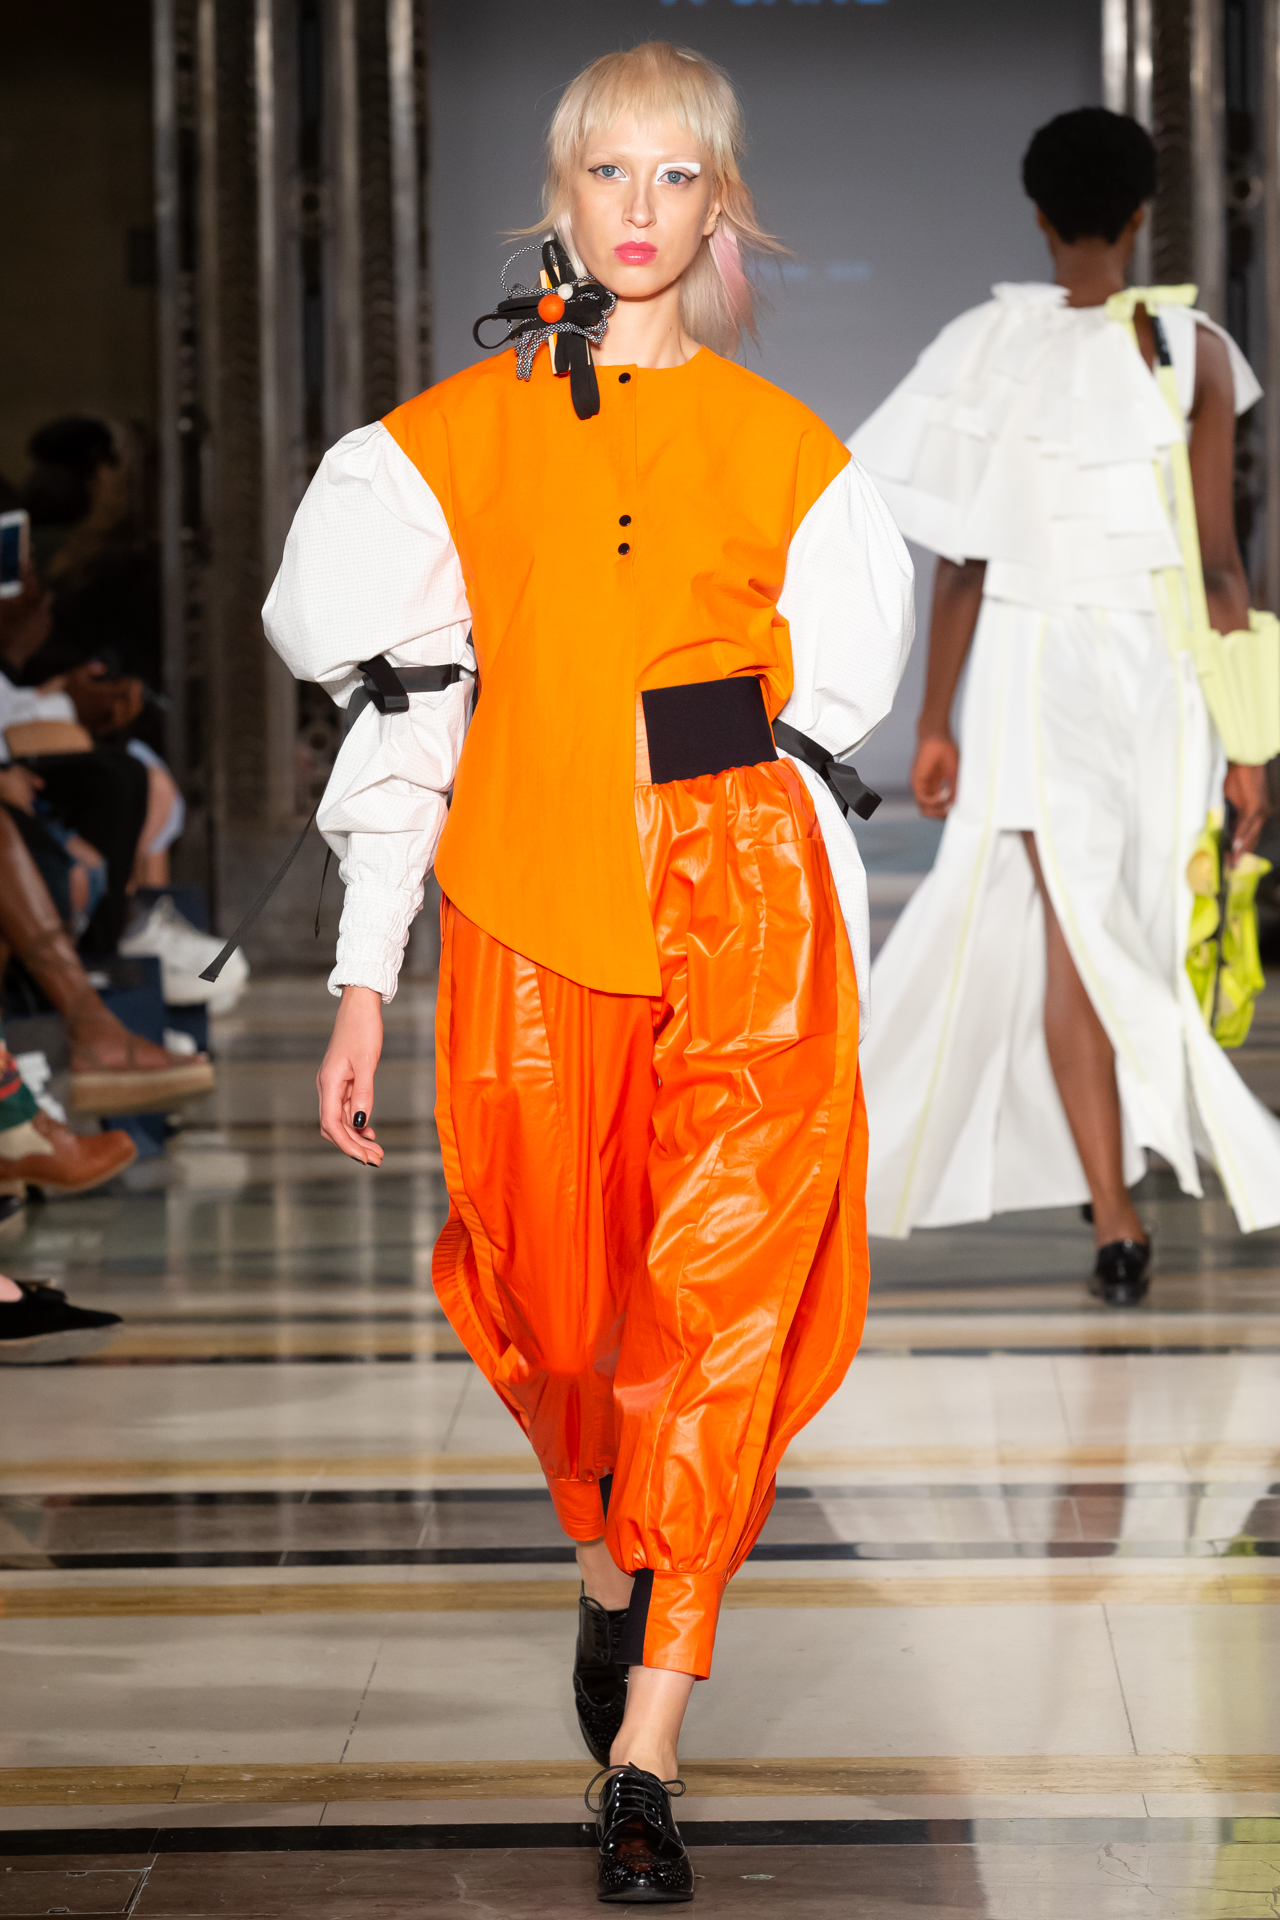 Hailey Baldwin would wear these pants. - Look 015: Look out Virgil Abloh.